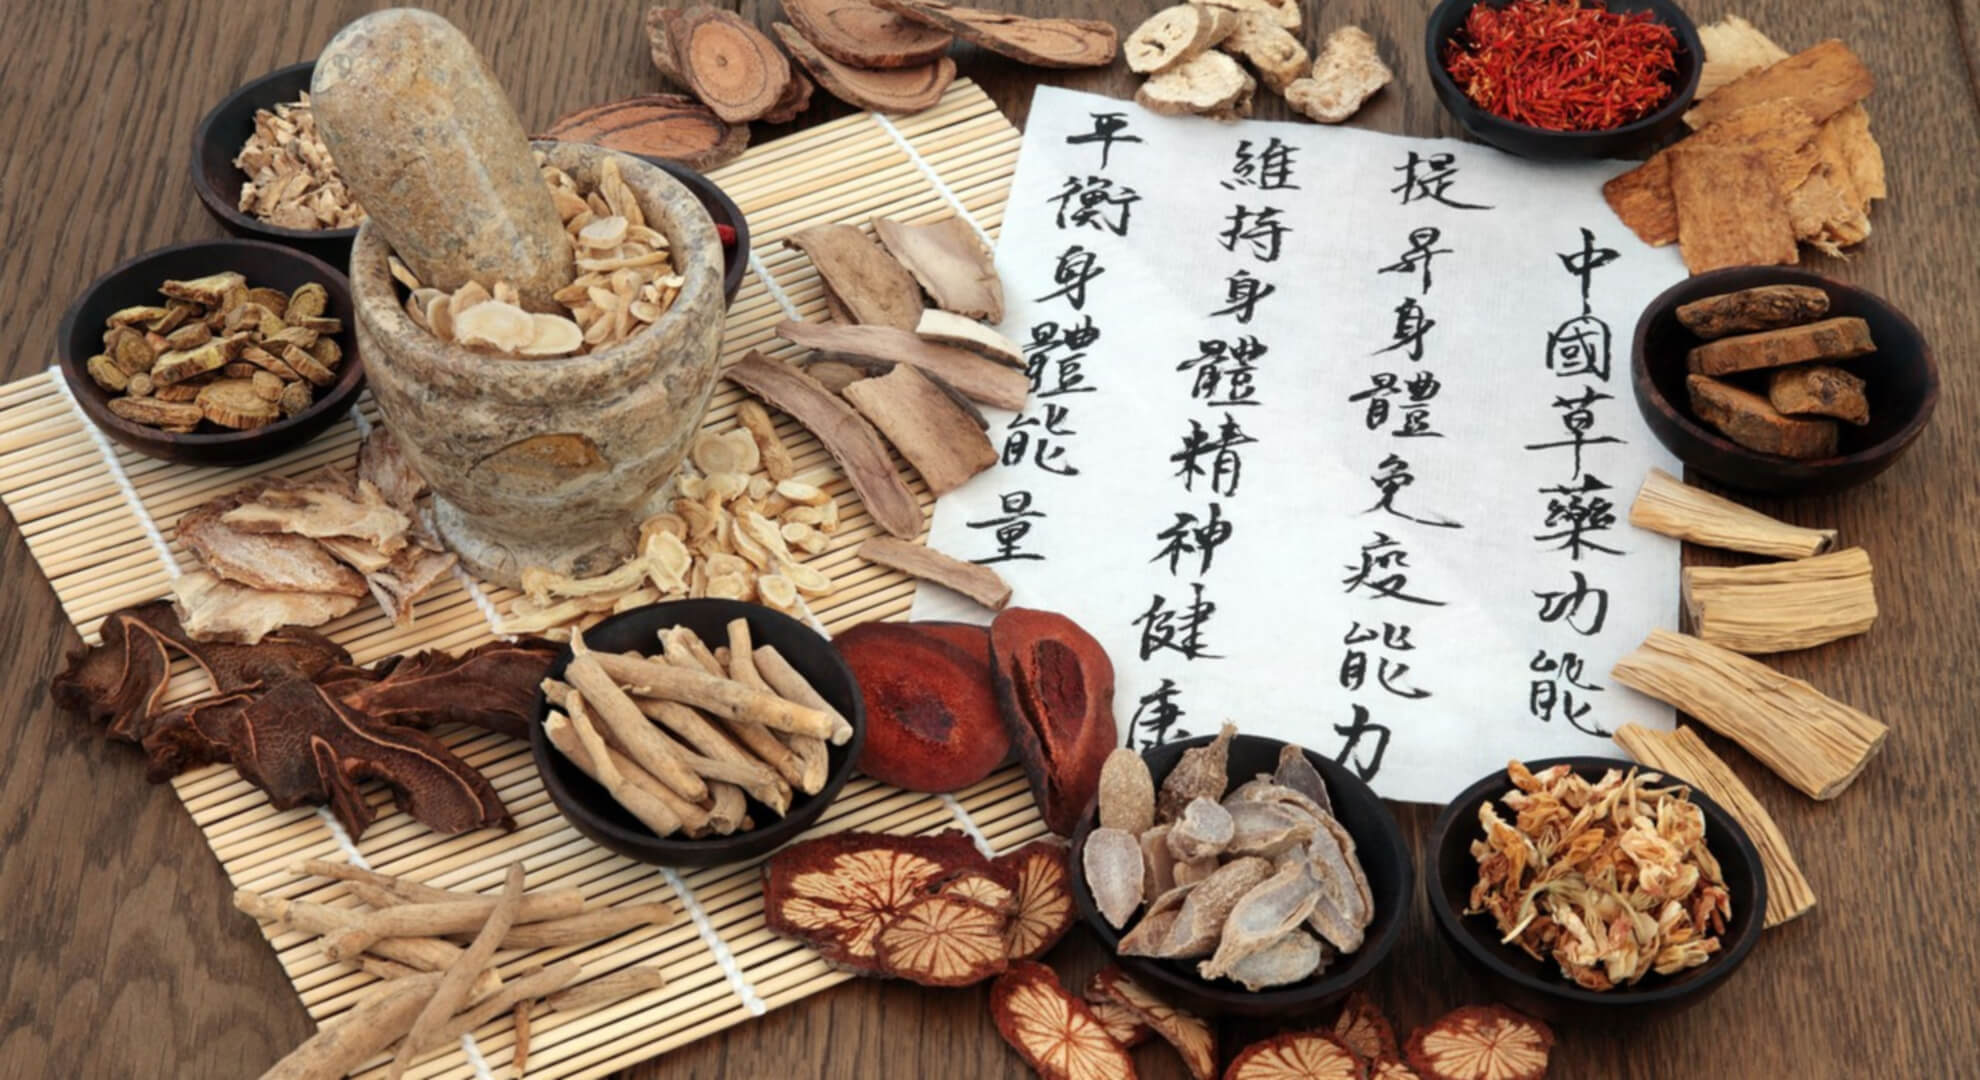 Eastern herbal therapy